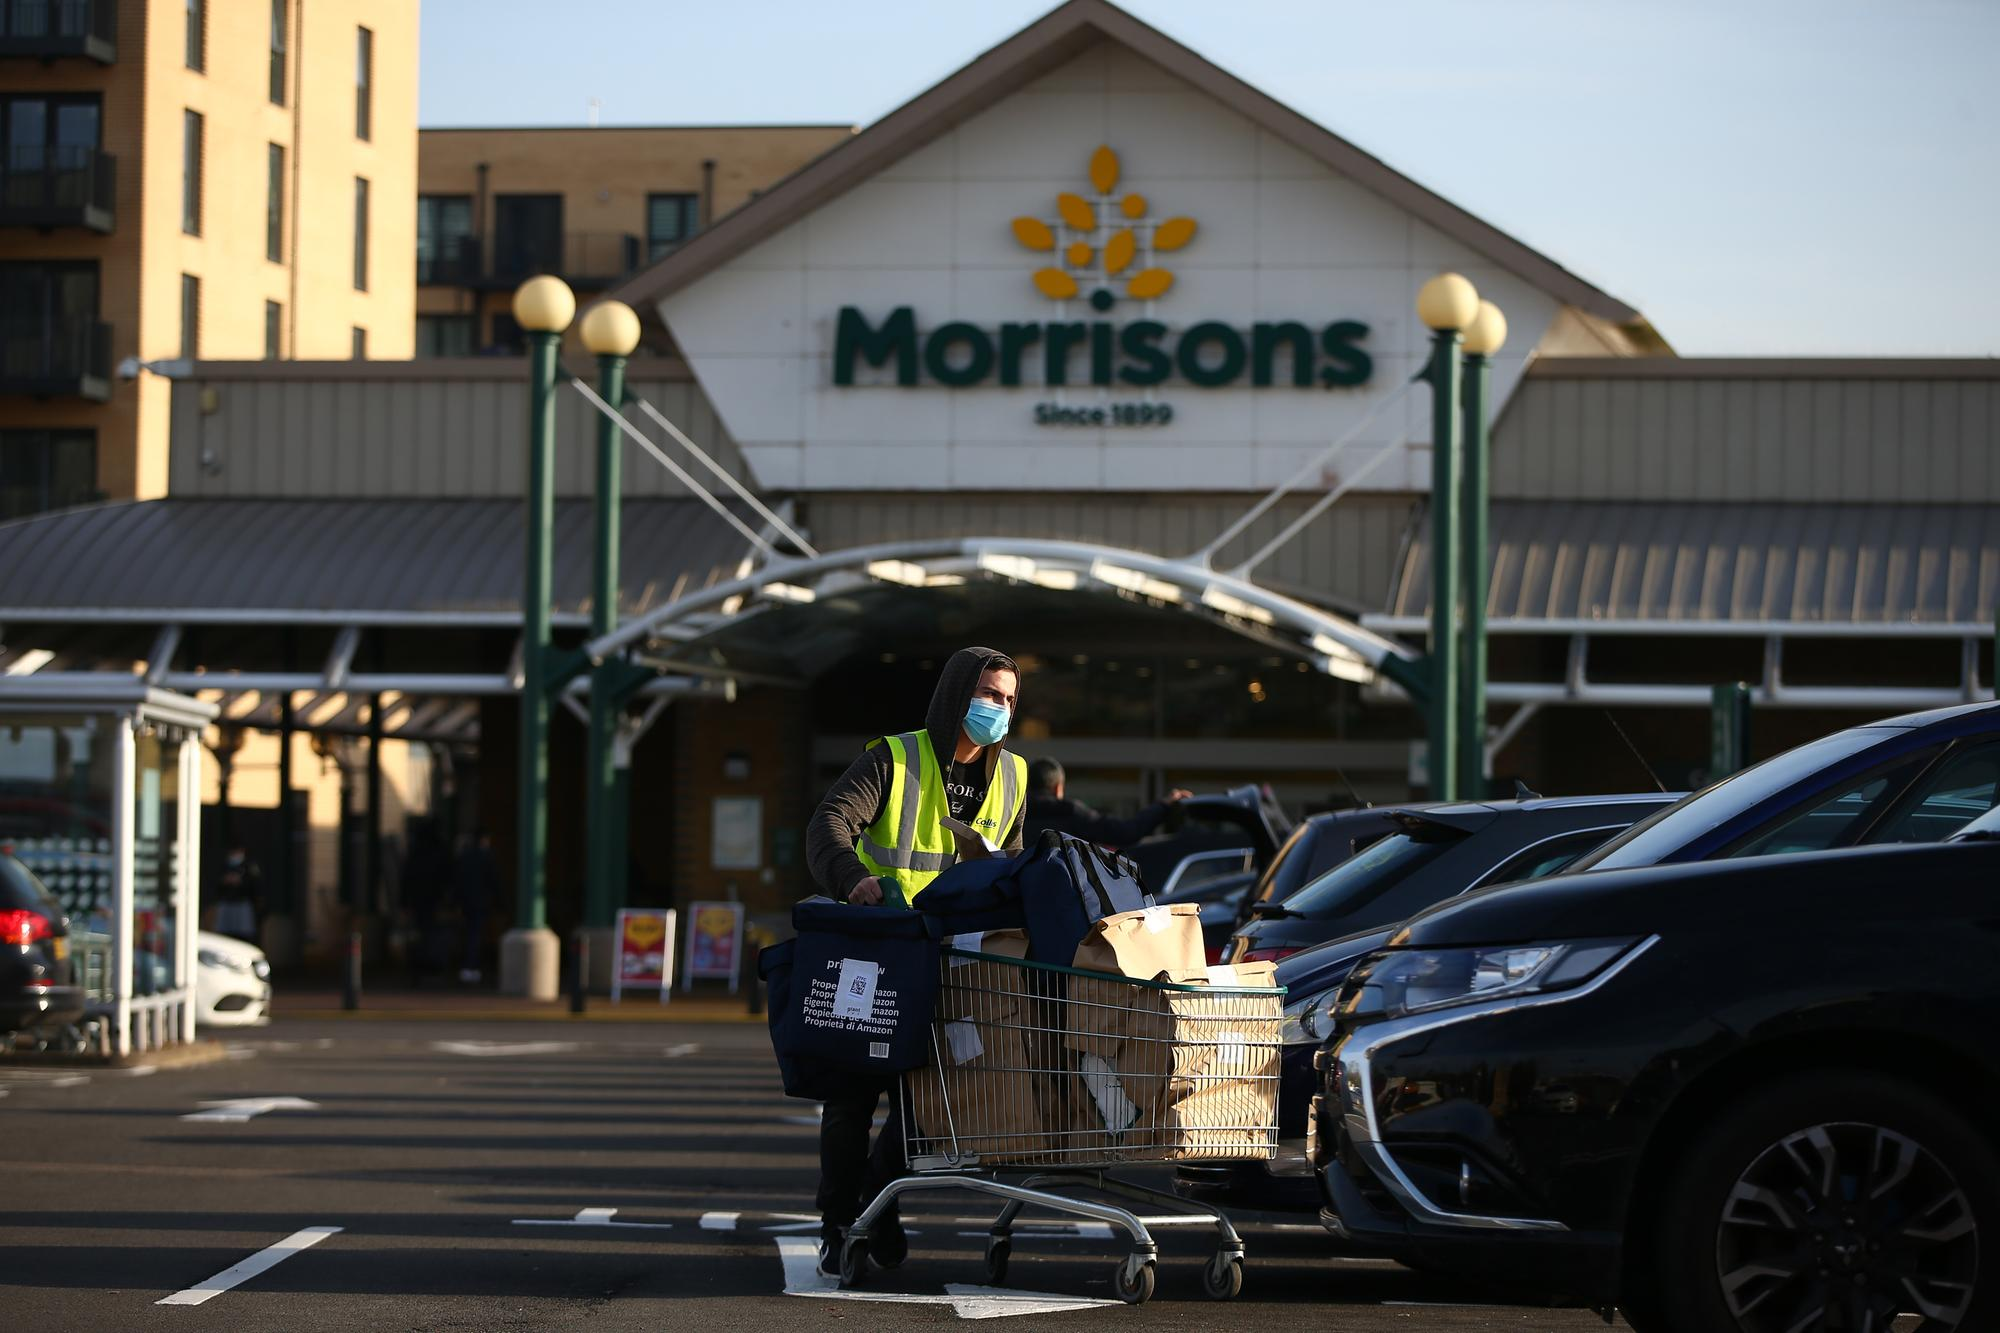 Morrisons Announces Its Car Parks Will Become Covid 19 Vaccination Sites The Star